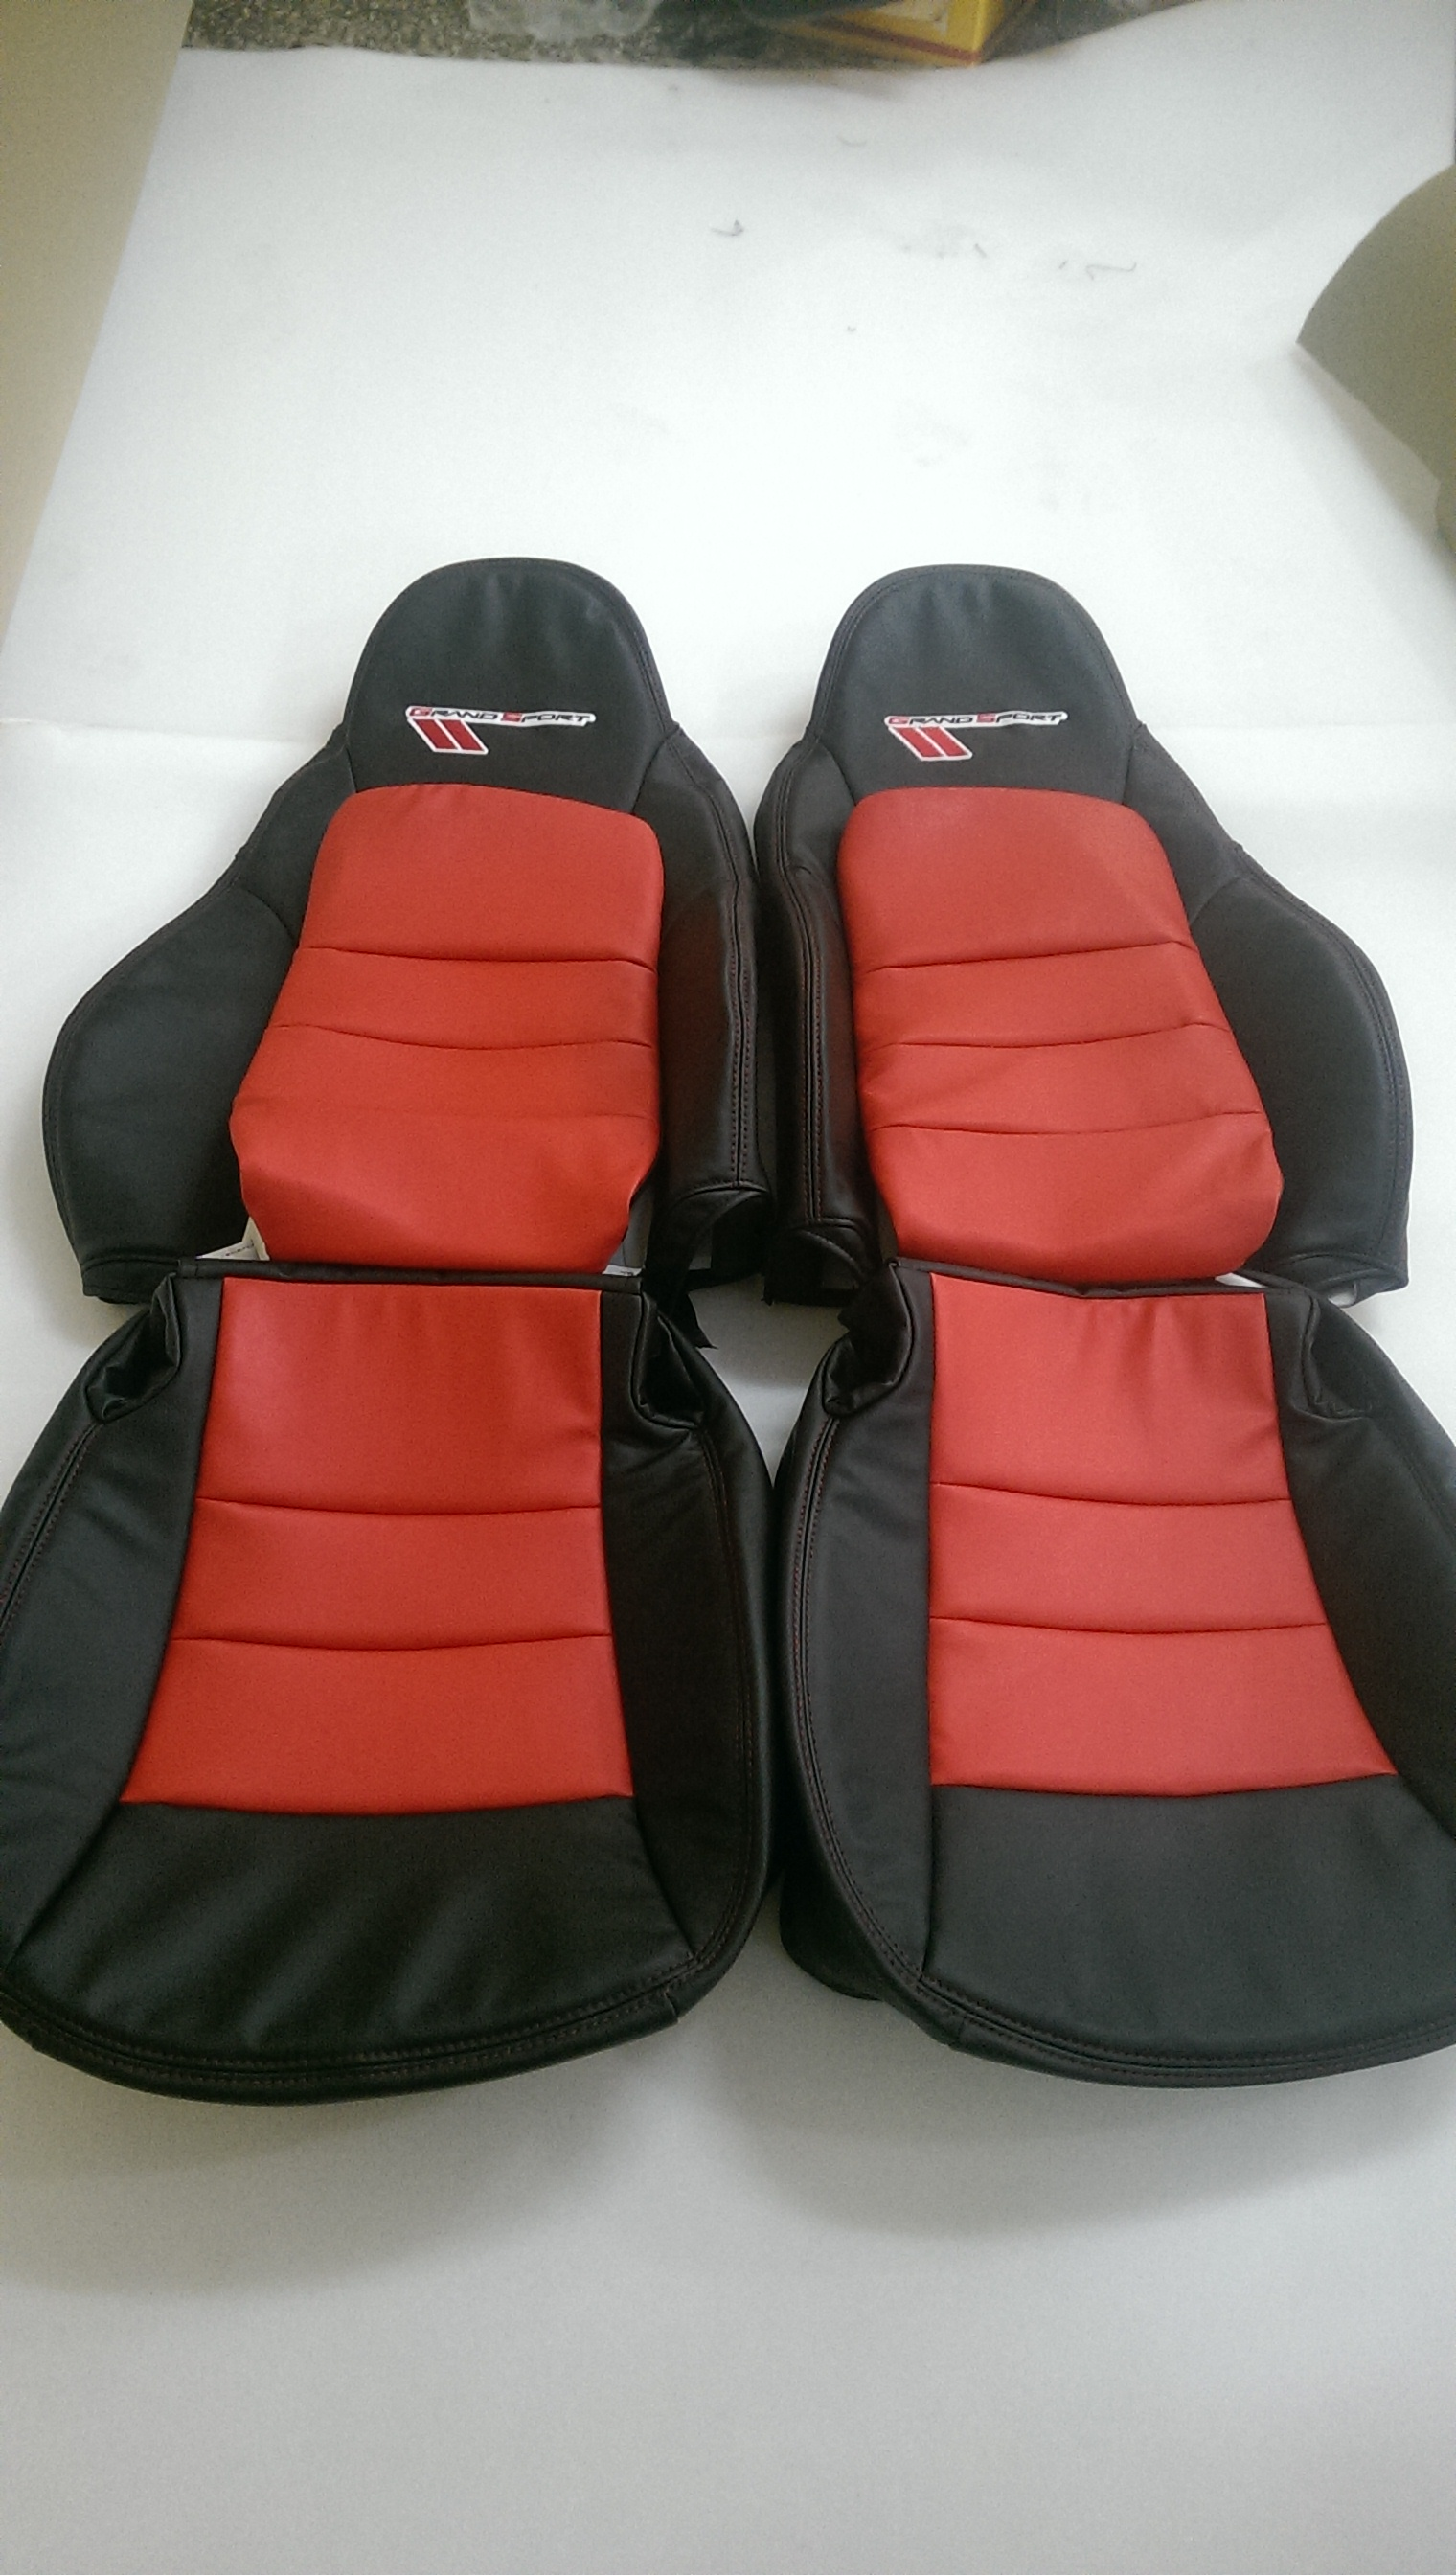 Interior Innovations Custom Synthetic Leather Seat Covers for Sport Seats with Corvette and C5 Logos